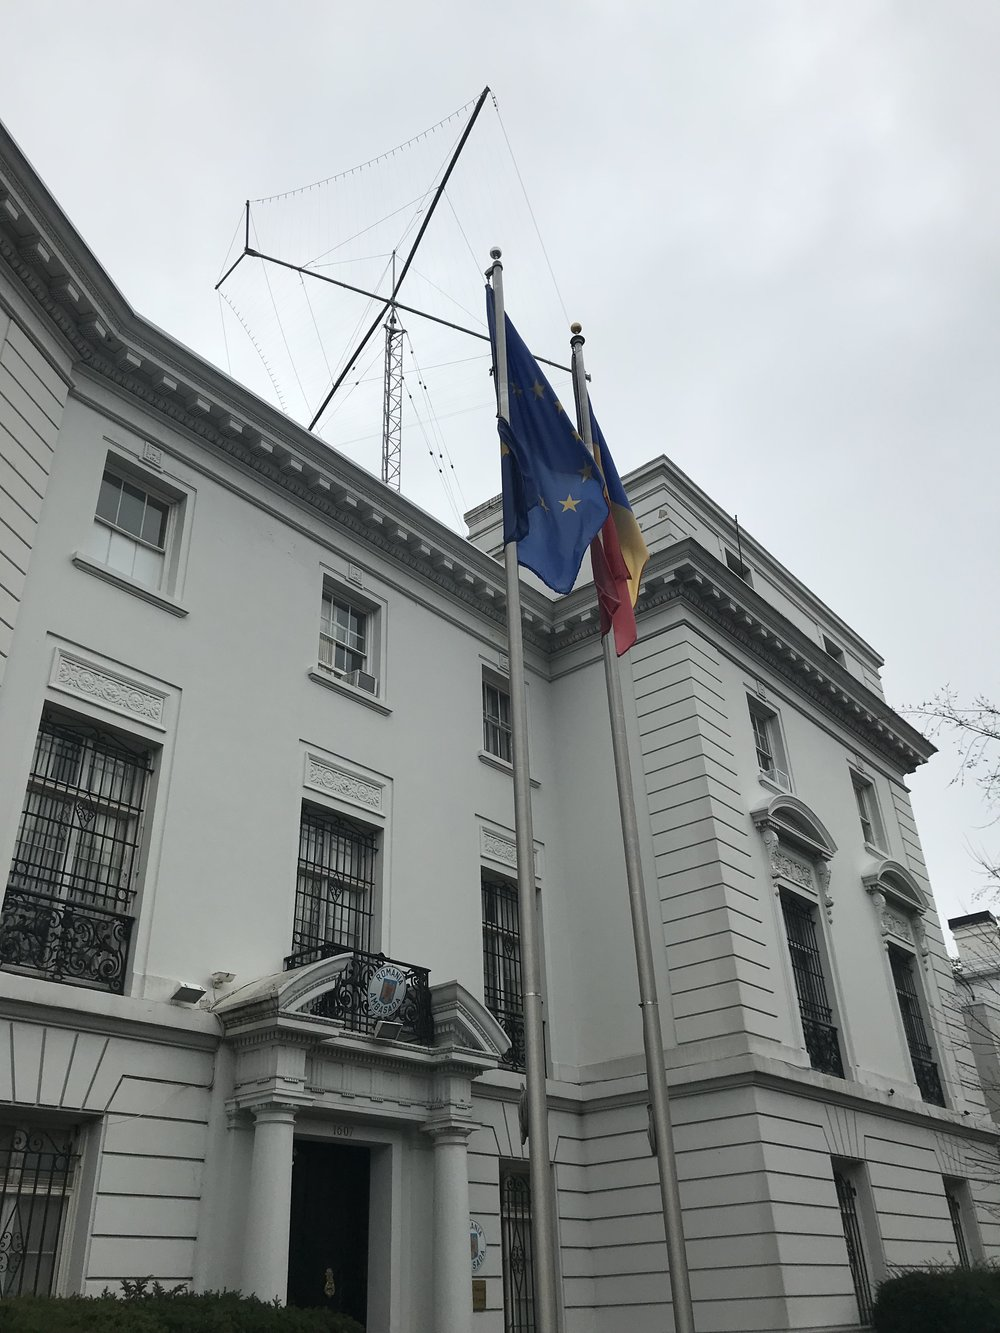 The Embassy of Romania.